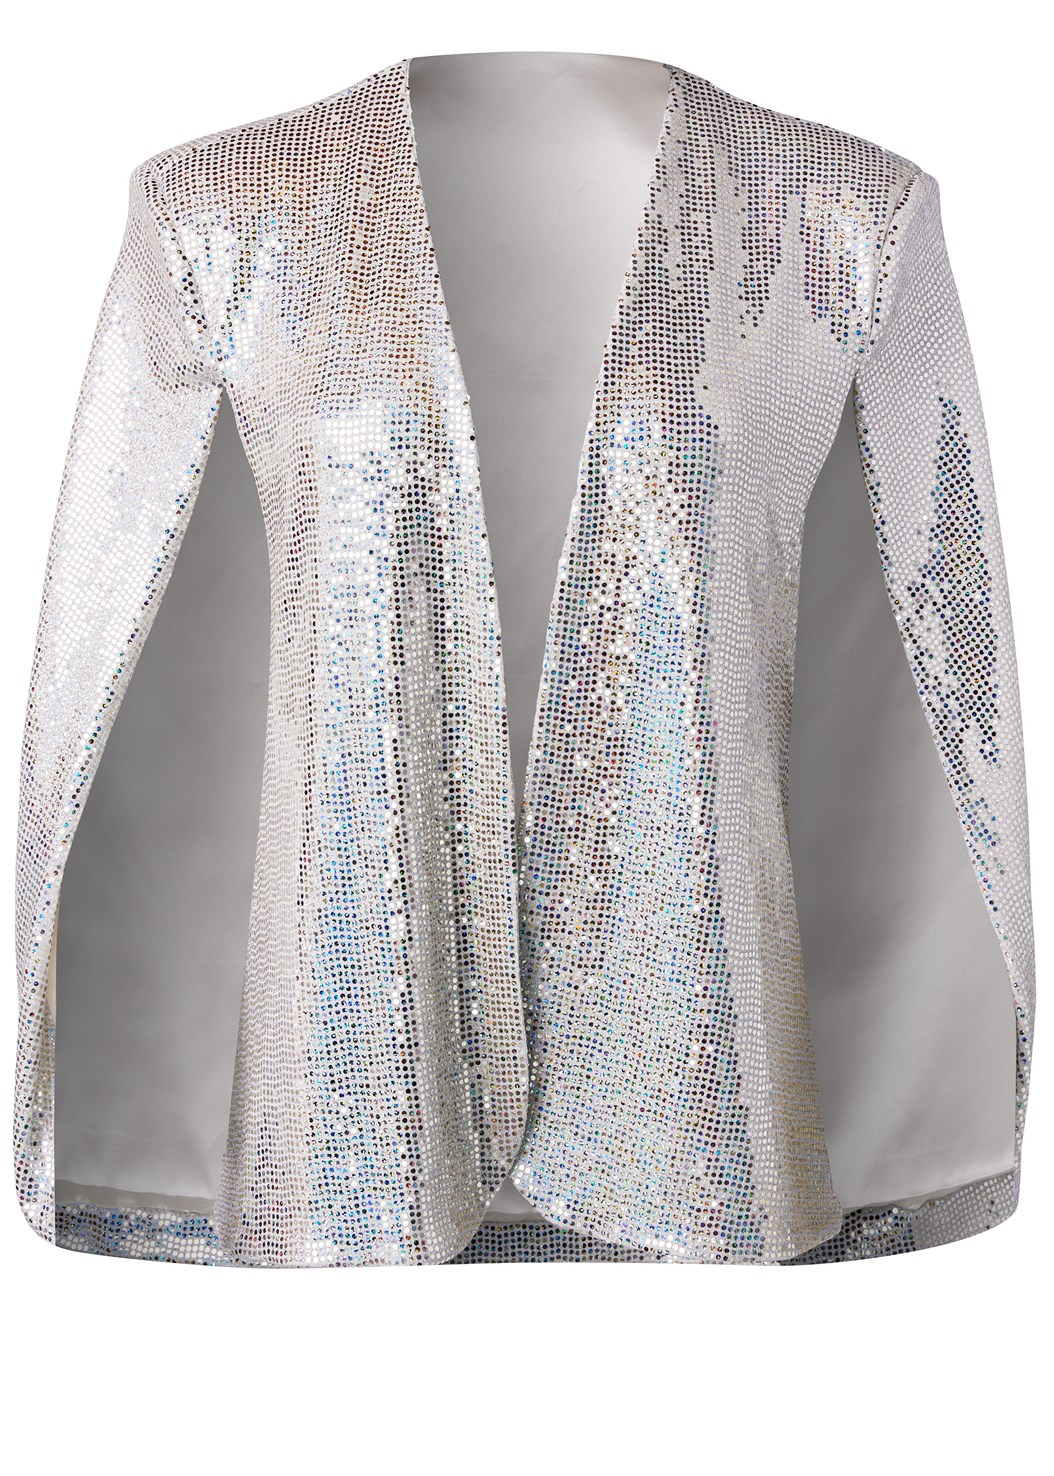 Sequin Cape,Basic Cami Two Pack,Mid Rise Color Skinny Jeans,Mid Rise Slimming Stretch Jeggings,High Heel Strappy Sandals,Hoop Detail Earrings